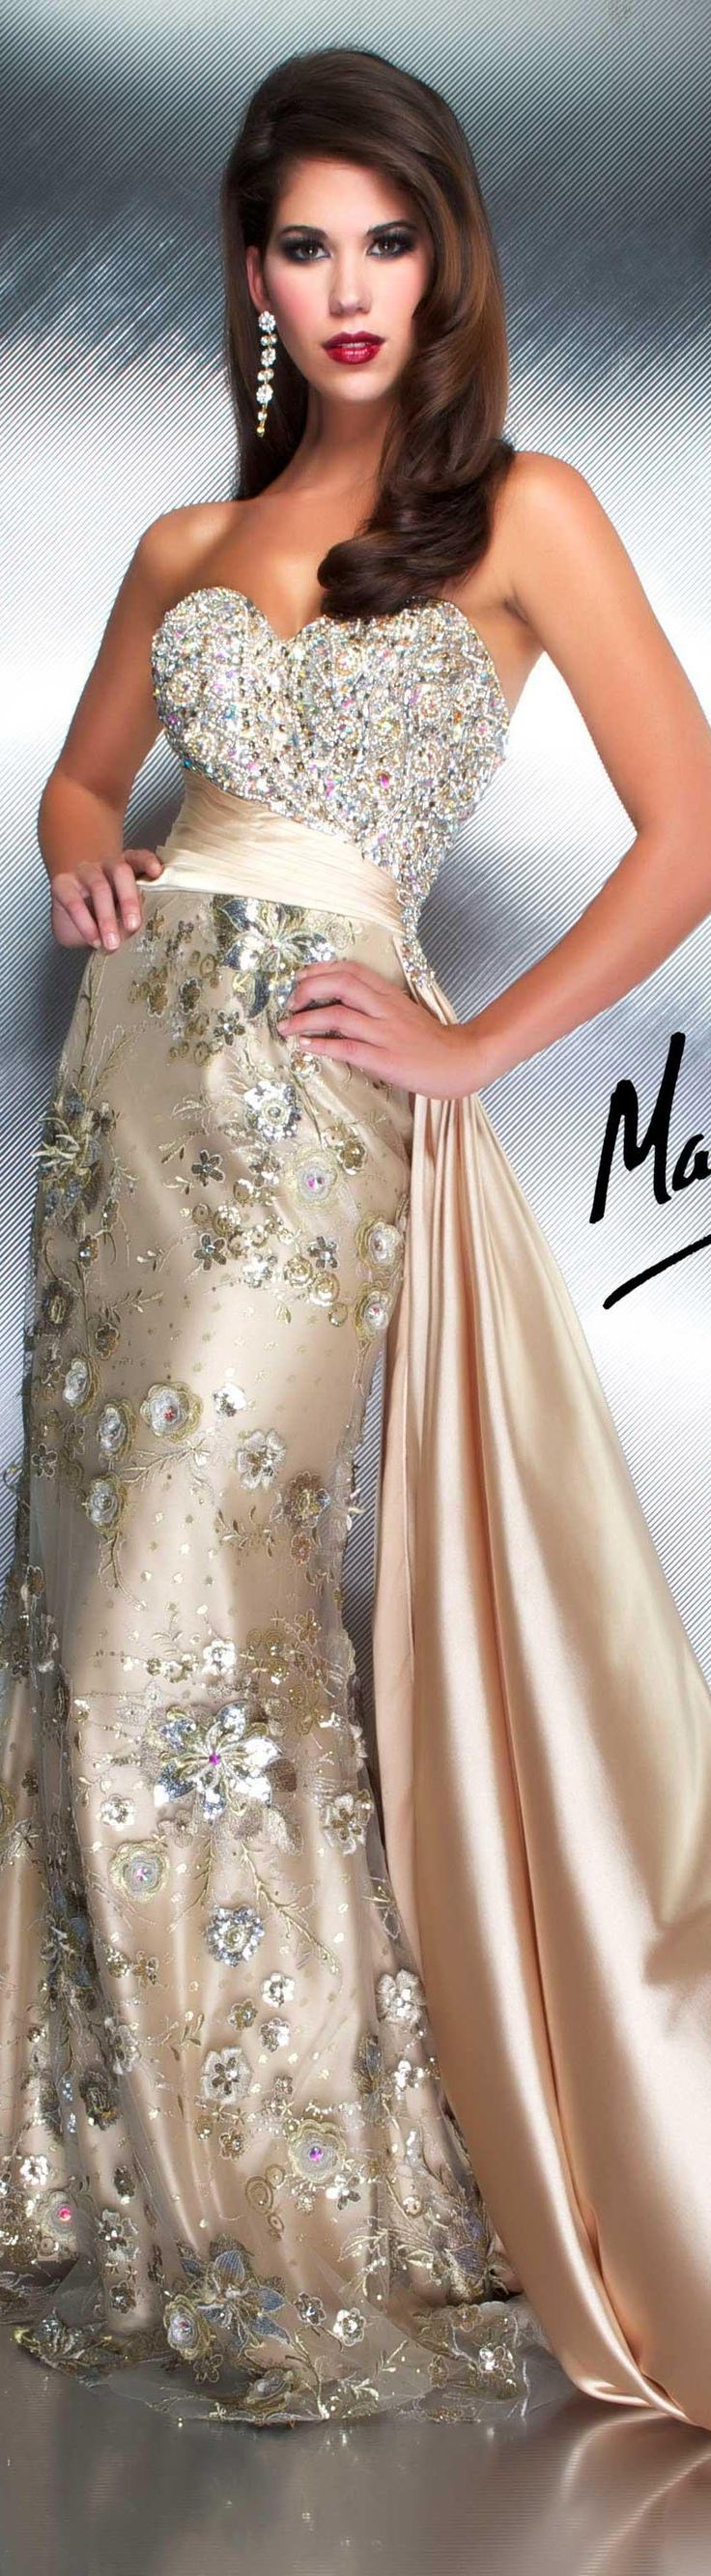 best dress to impressyourself images on pinterest high